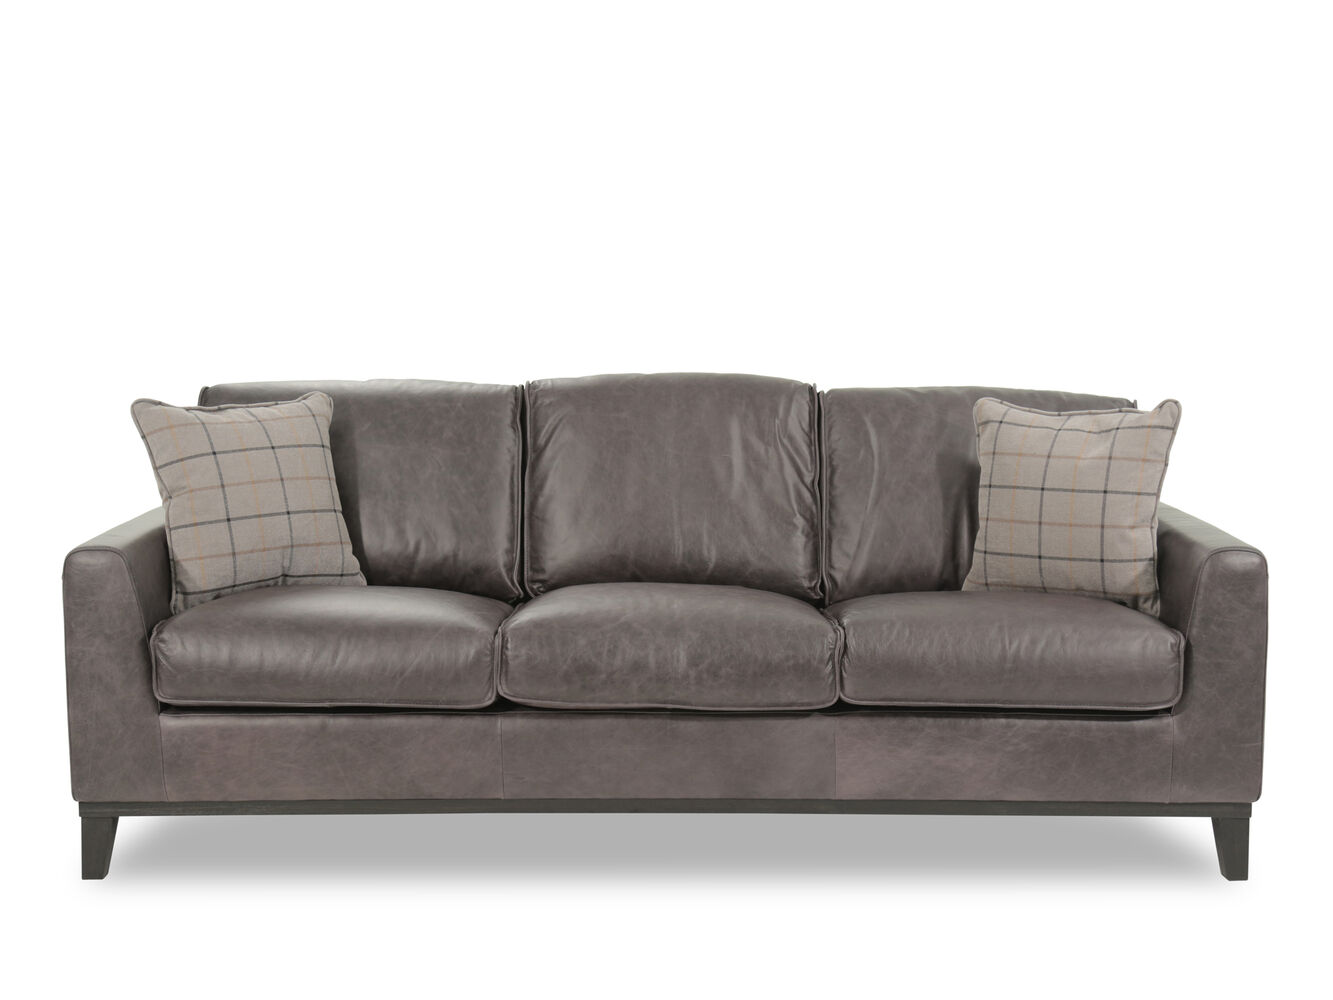 boulevard vintage cowboy leather gray sofa mathis